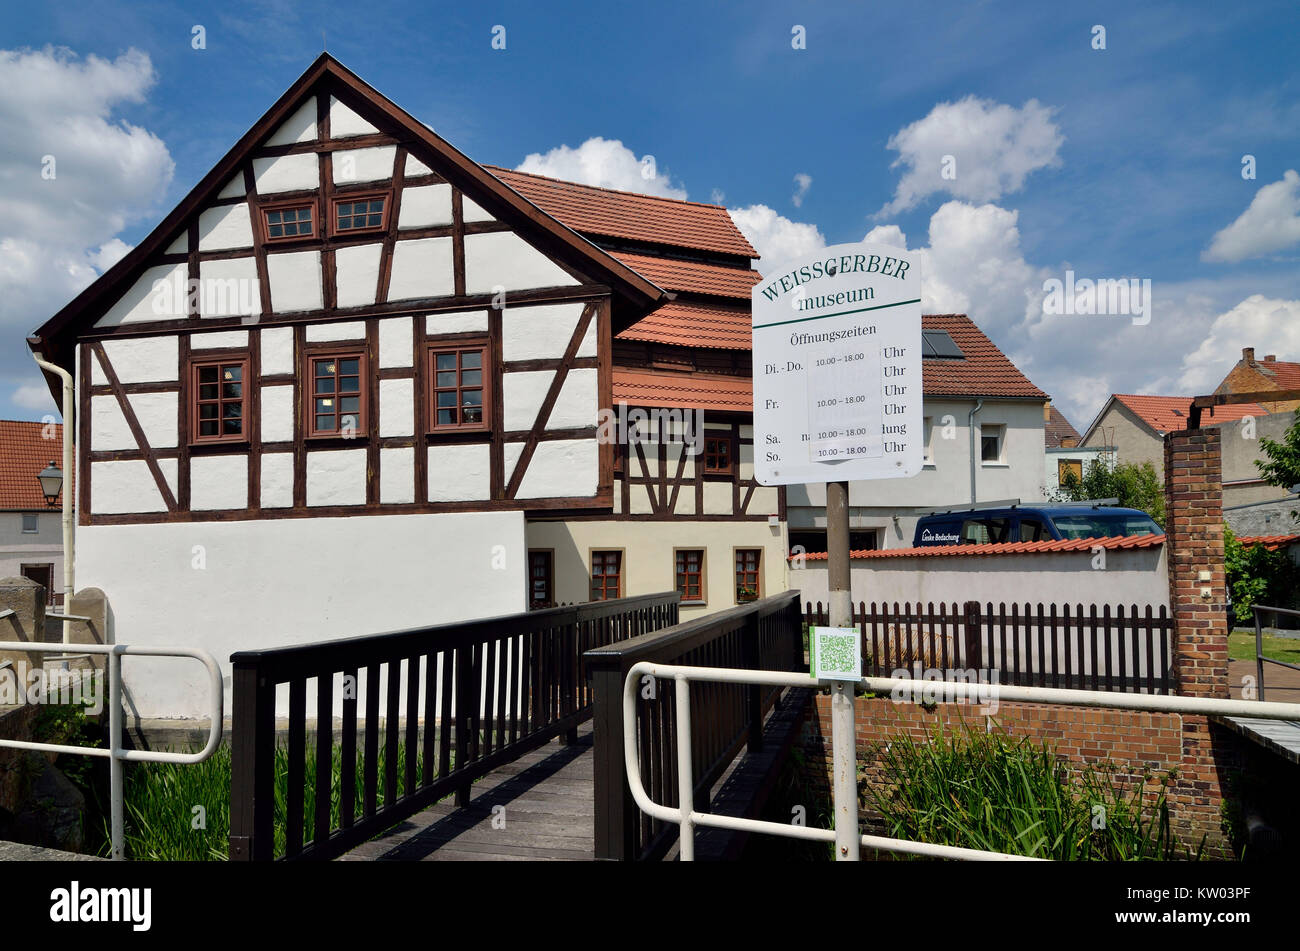 Doberlug grove Kirch, tanner's of fine leather museum in grove Kirch, Doberlug Kirchhain, Weißgerbermuseum - Stock Image